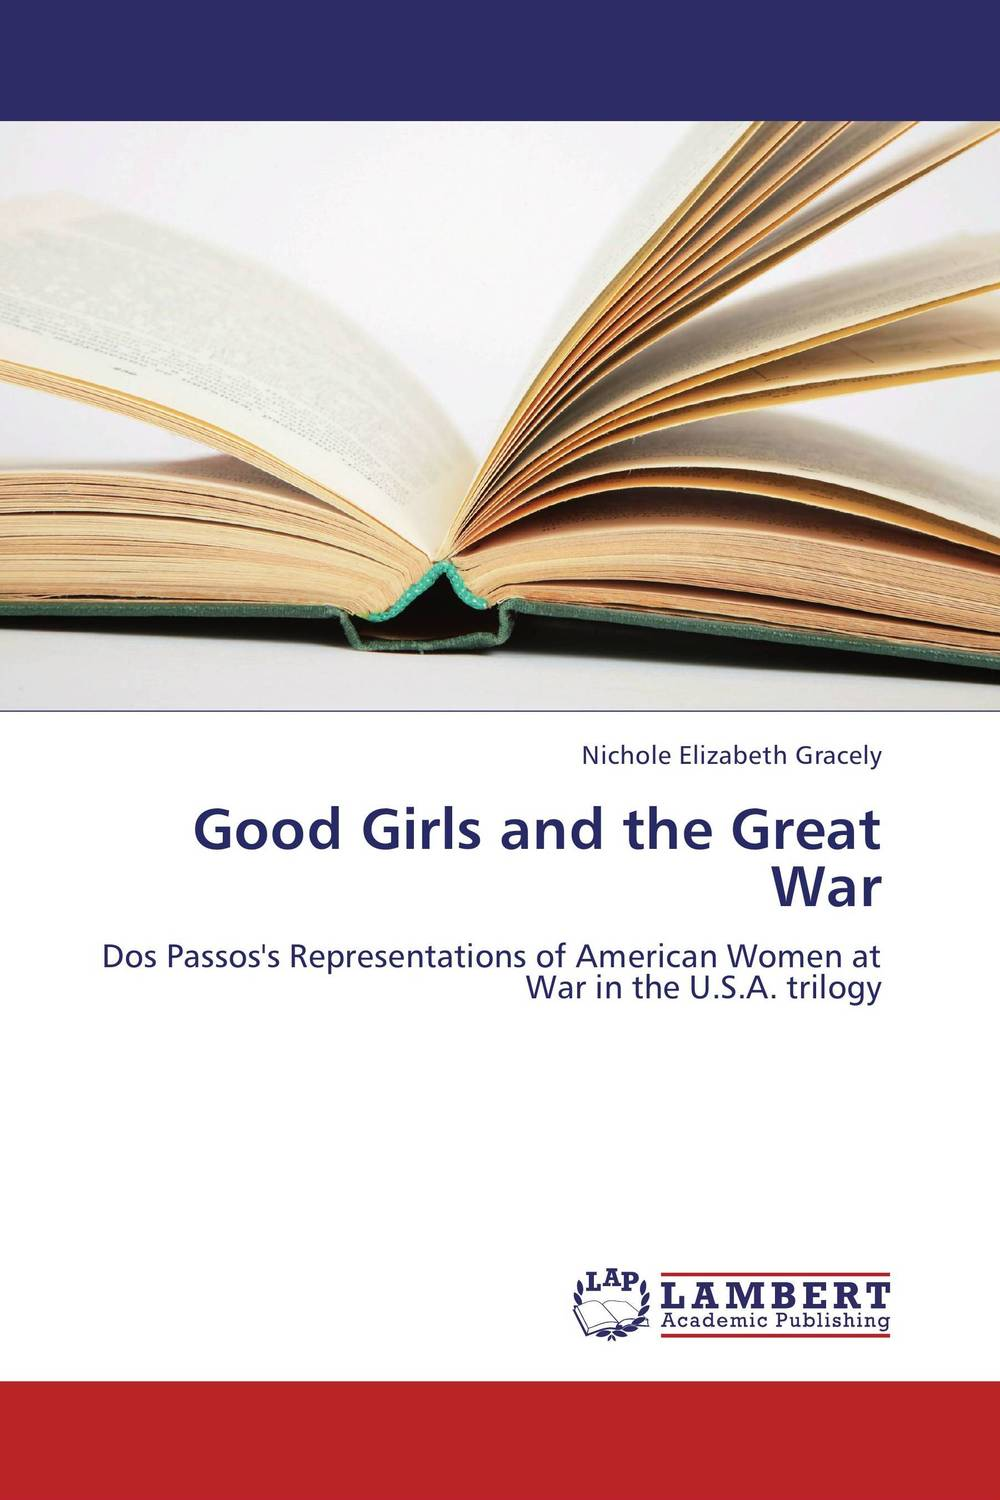 Good Girls and the Great War